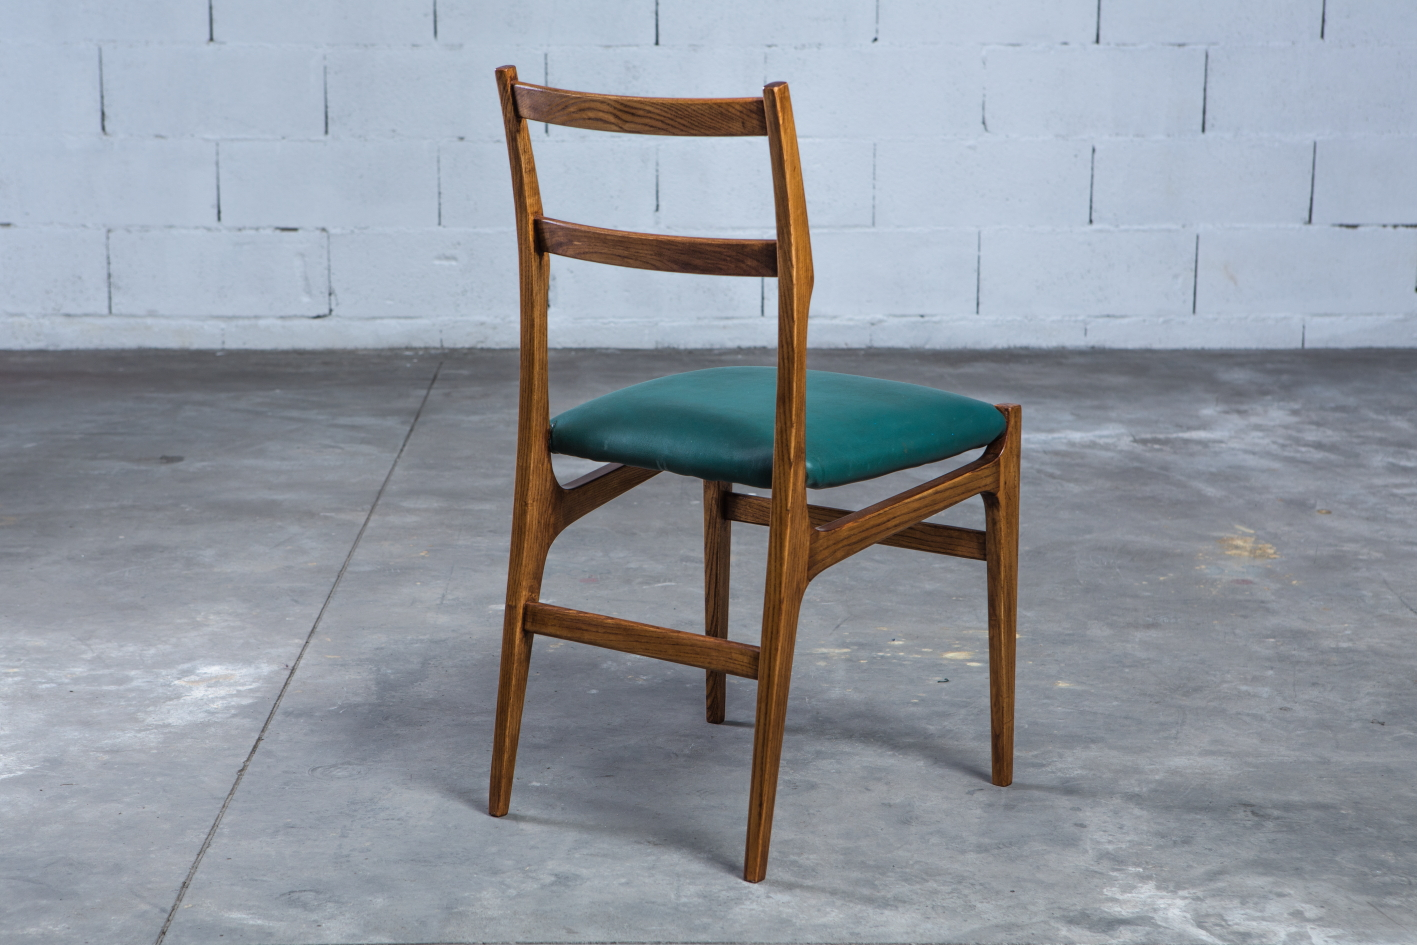 Rare set of 14 chairs for the ''Parco dei Principi'' Hotel - Gio Ponti for Cassina 1965 - 3/4 back view